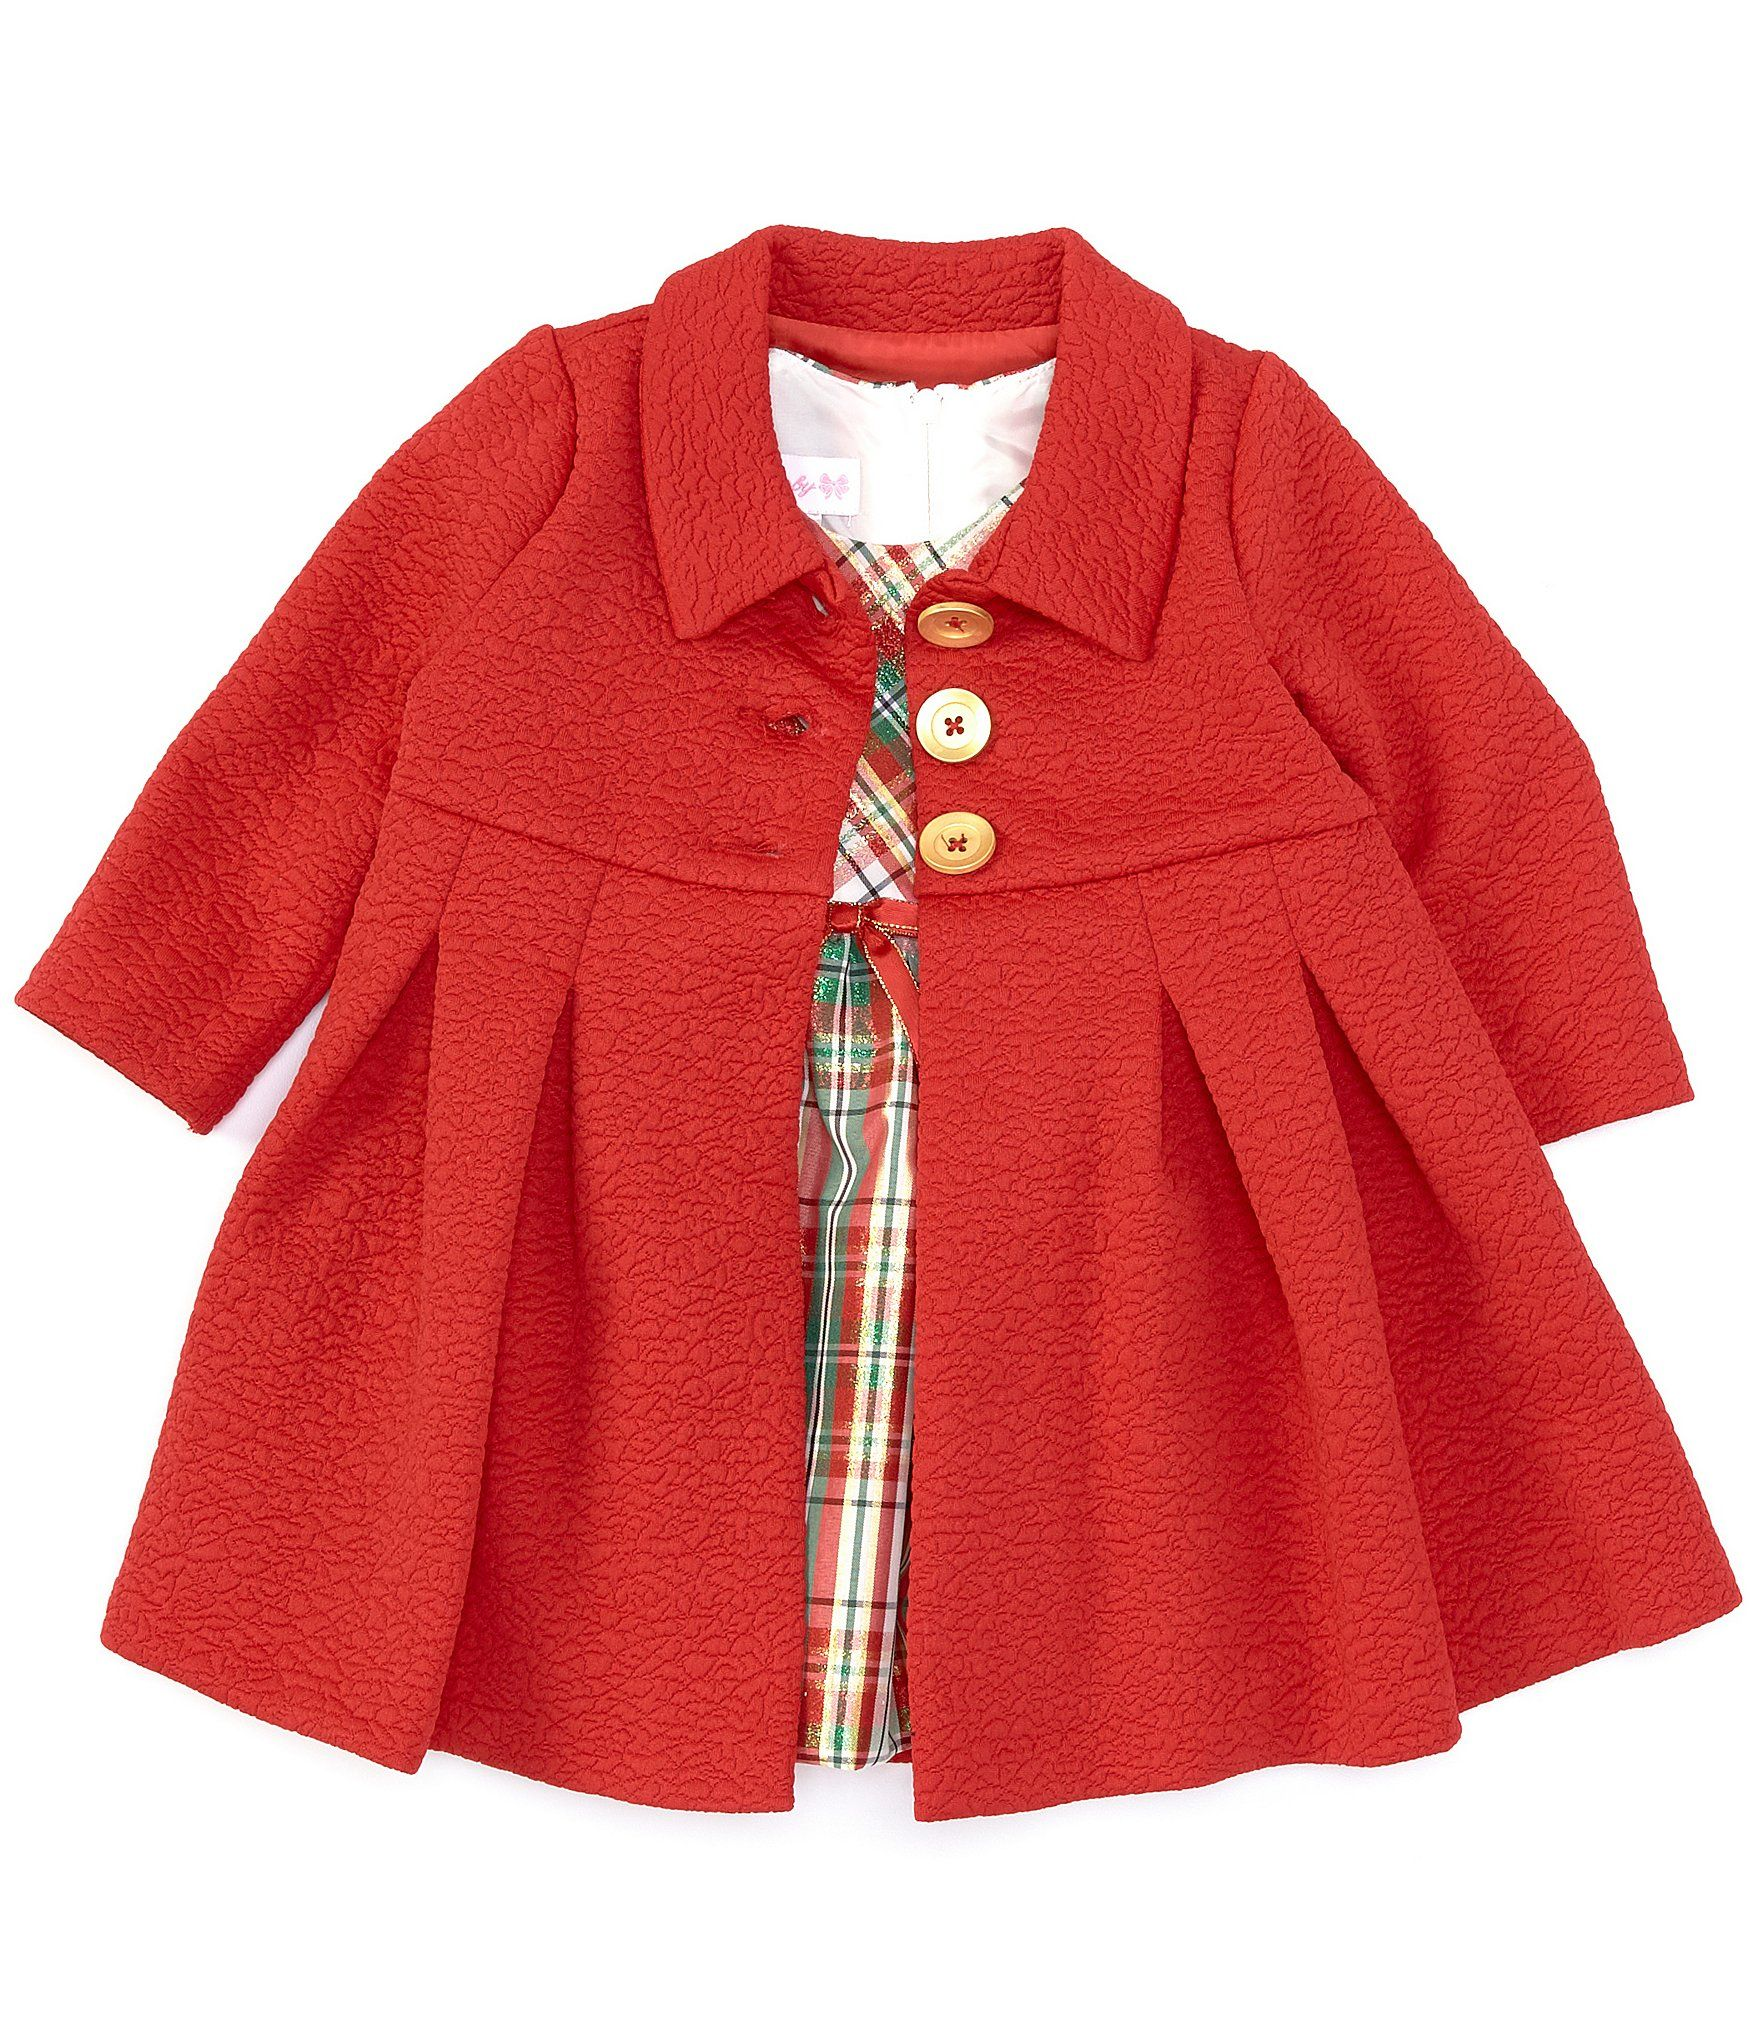 Photo of Bonnie Jean Baby Girls Newborn-24 Months Textured-Knit Coat  Plaid Taffeta Fit-And-Flare Dress Set – Red 6/9